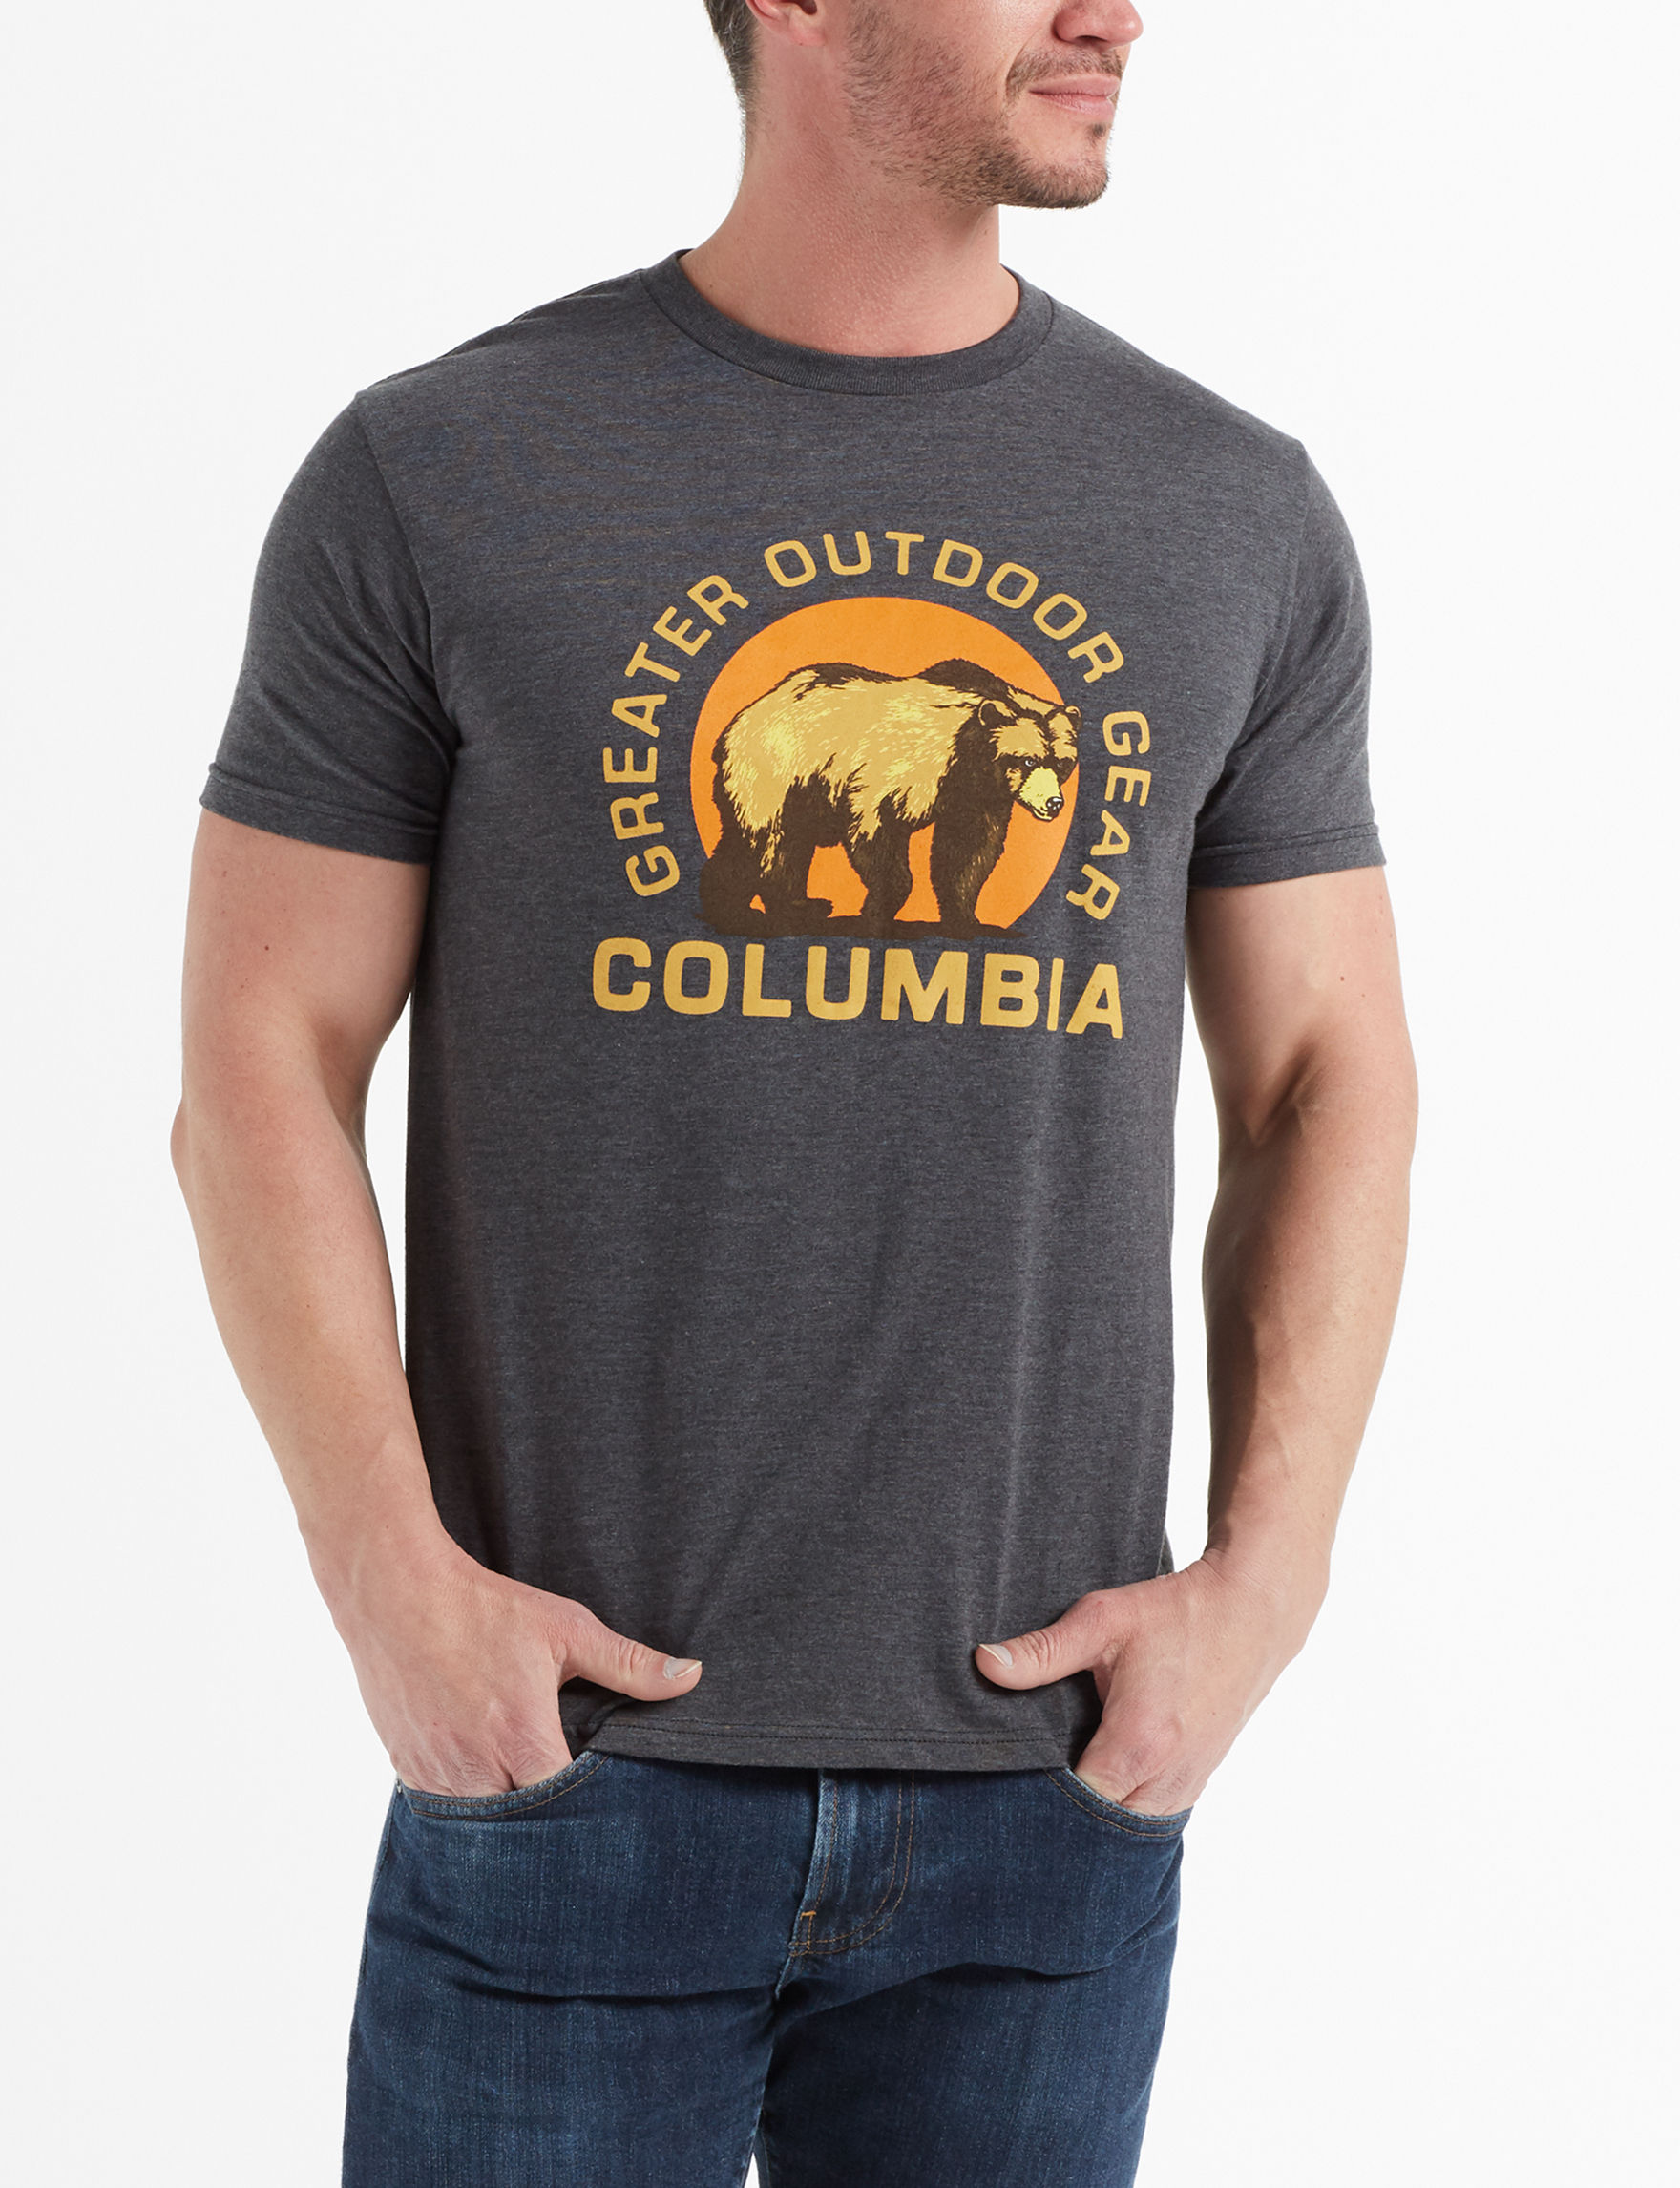 Columbia Dark Heather Grey Tees & Tanks